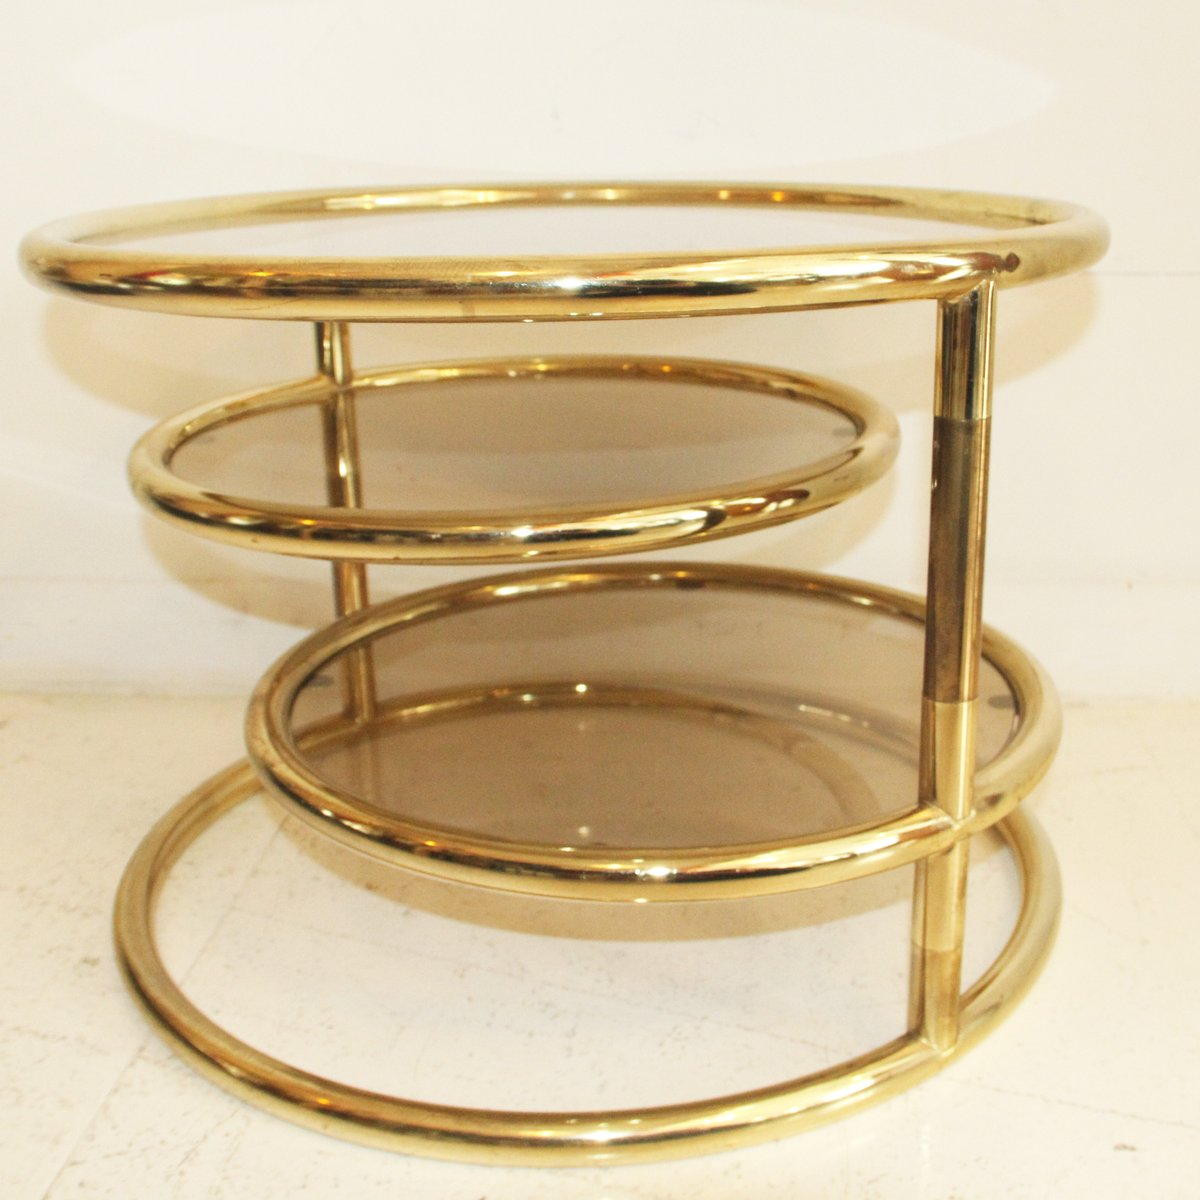 Adjustable french three tiered gold metal coffee table 1970s for sale at pamono Gold metal coffee table